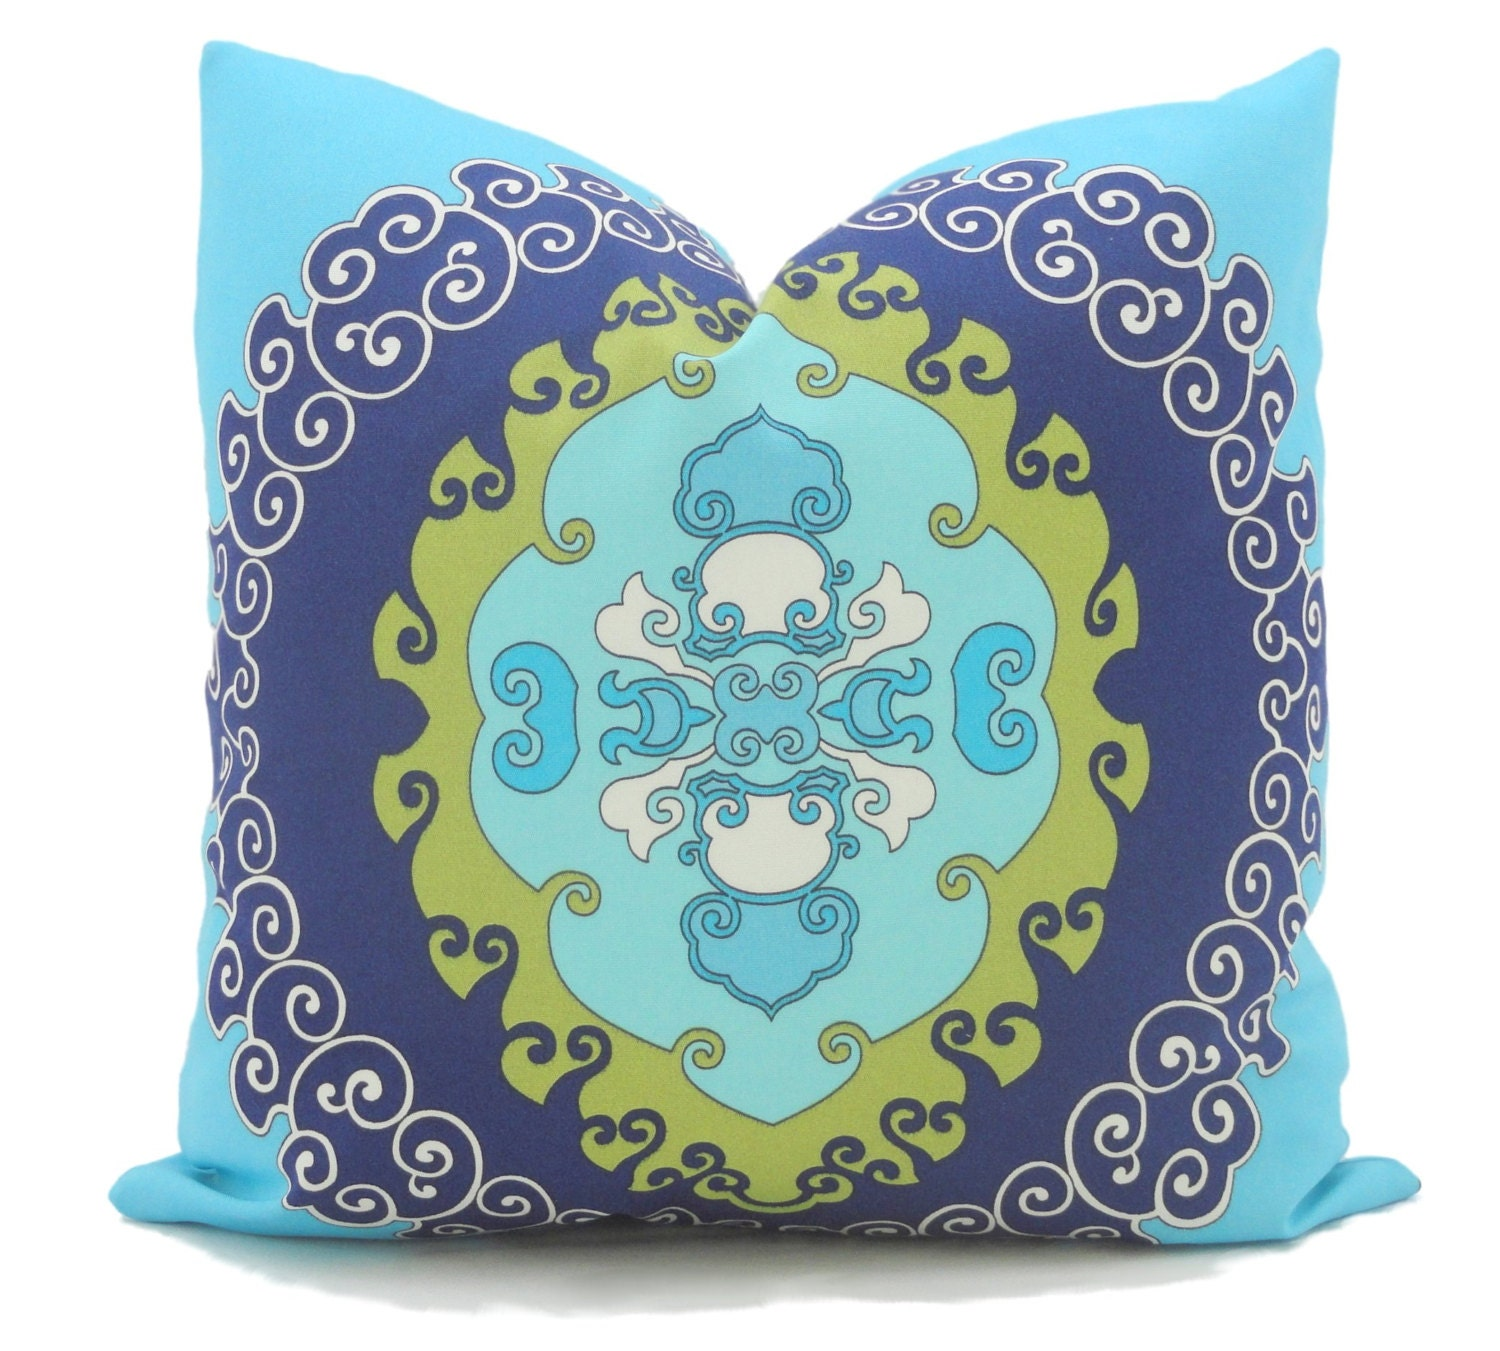 and height pink geometric green fit pillow chairish trina width turk pillows product aspect needlepoint